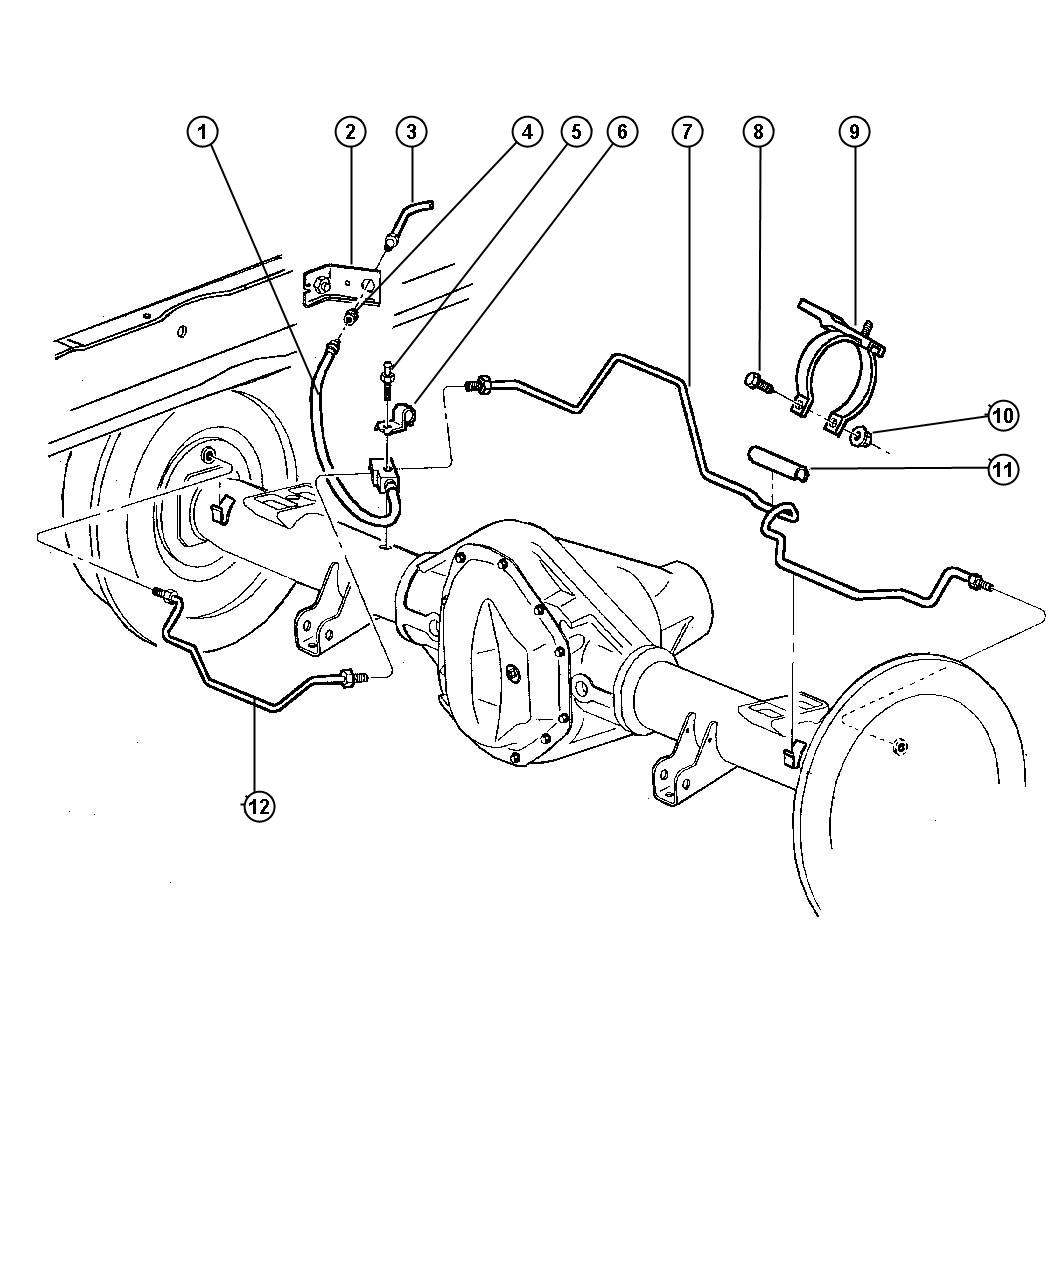 ShowAssembly on 1998 Gmc Truck Wiring Diagram